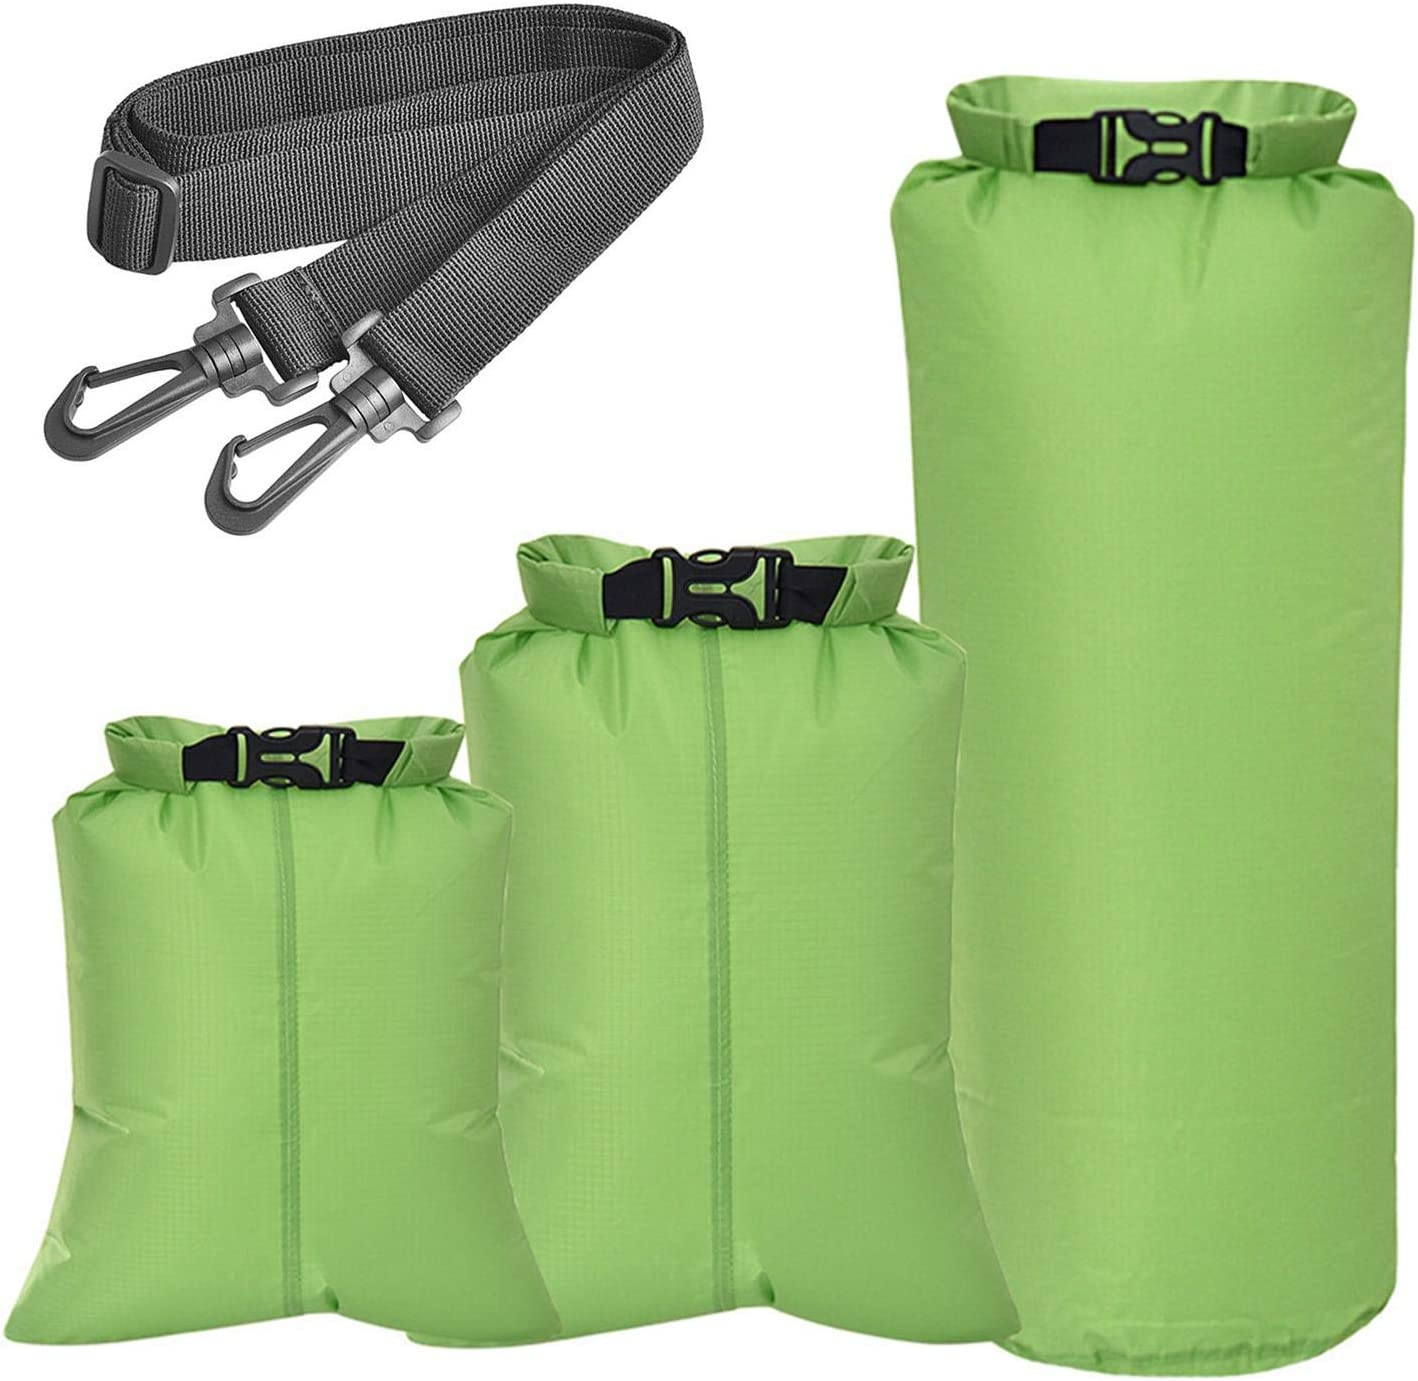 SYCOOVEN 3pcs Set Multipurpose Outdoor Waterproof Max 58% OFF Storage Sale SALE% OFF Polyes